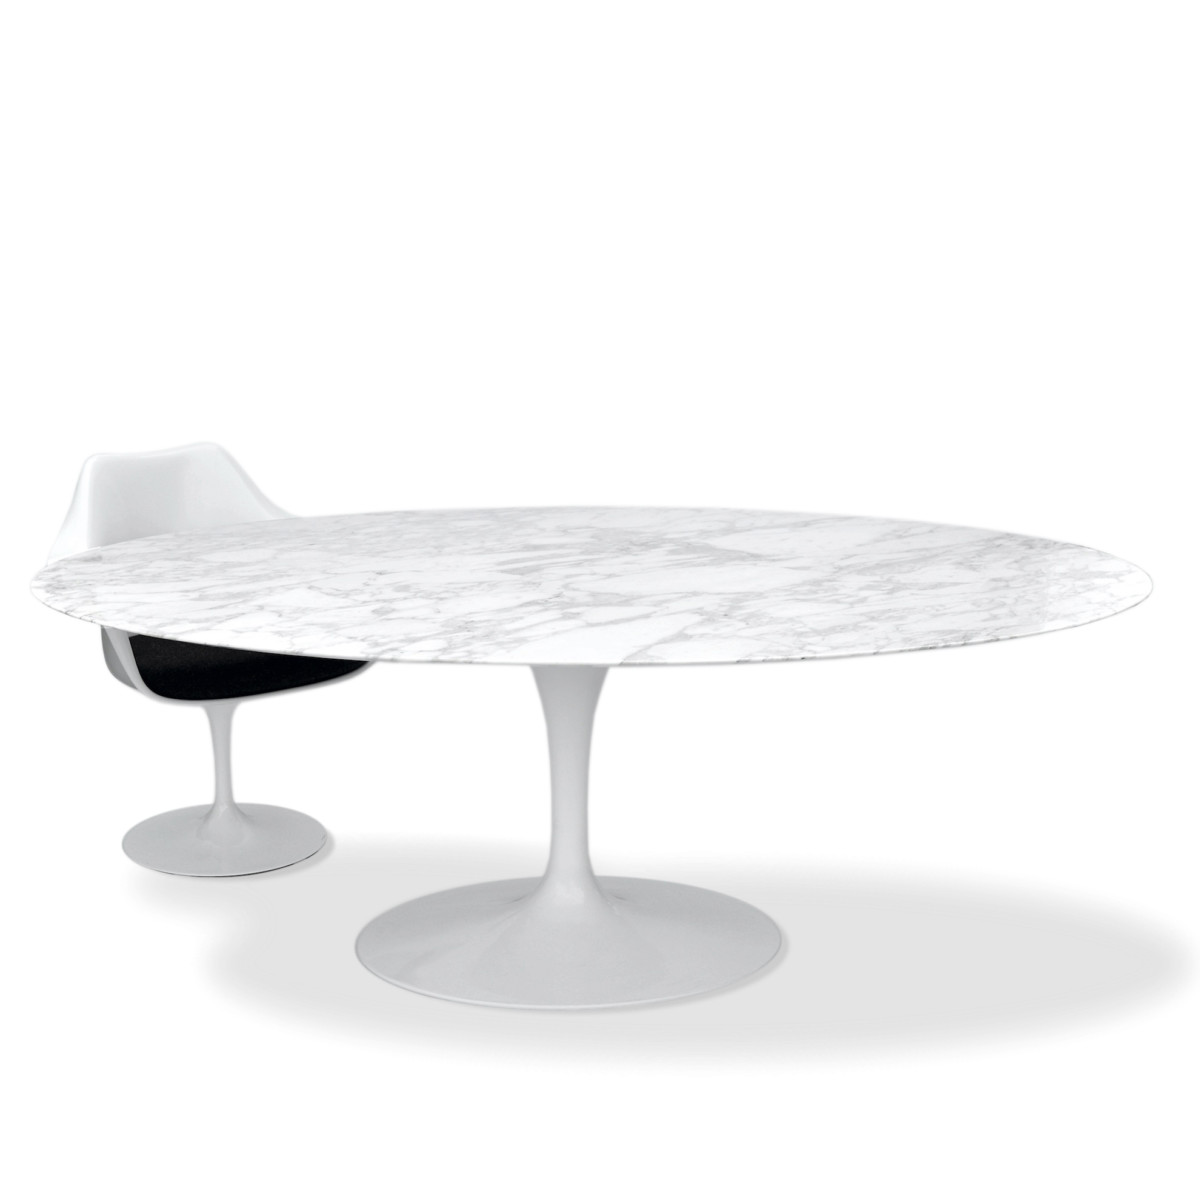 Saarinen Knoll Table Knoll Eero Saarinen Esstisch Oval 198x121cm Arabescato